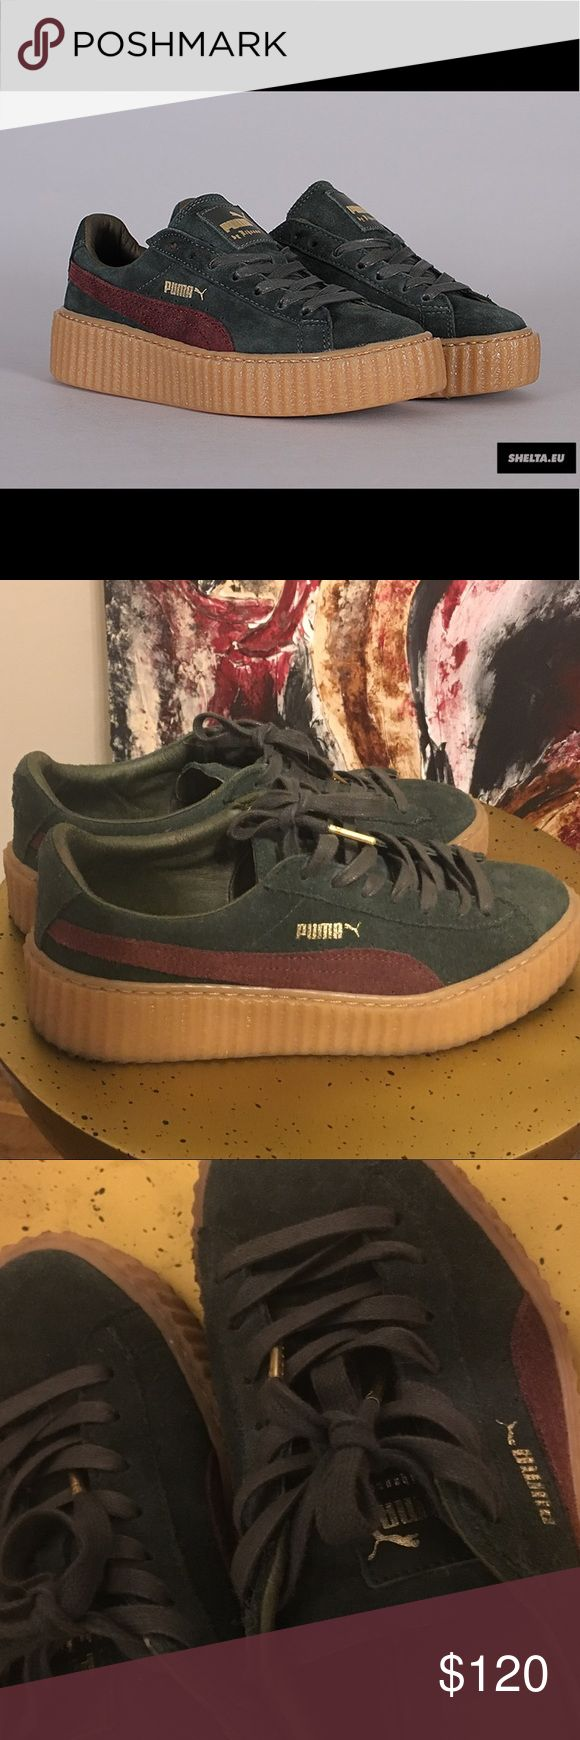 Puma Fenty by Rihanna Worn 2 times size 39 witch is a US 8.9...olive green with dark red on the side ☺️ Puma Shoes Sneakers